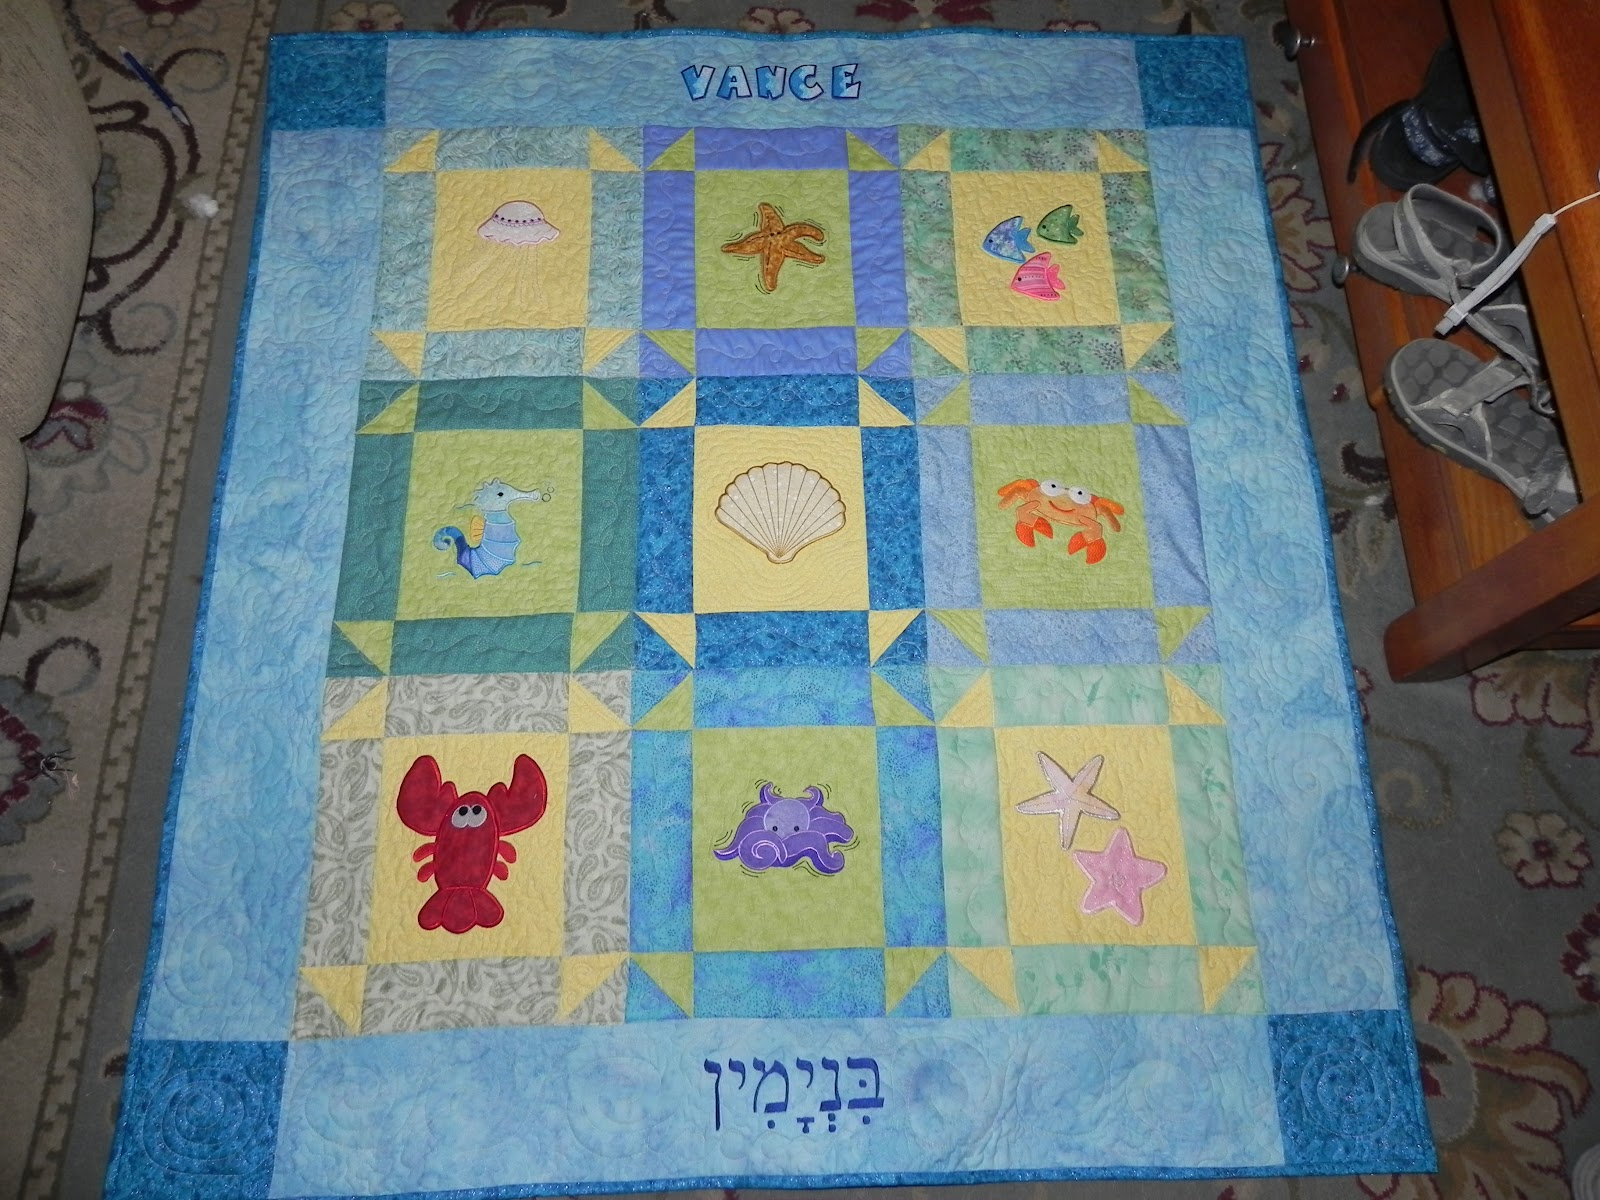 Dinah s Quilts and Embroidery: Baby / Toddler Quilts